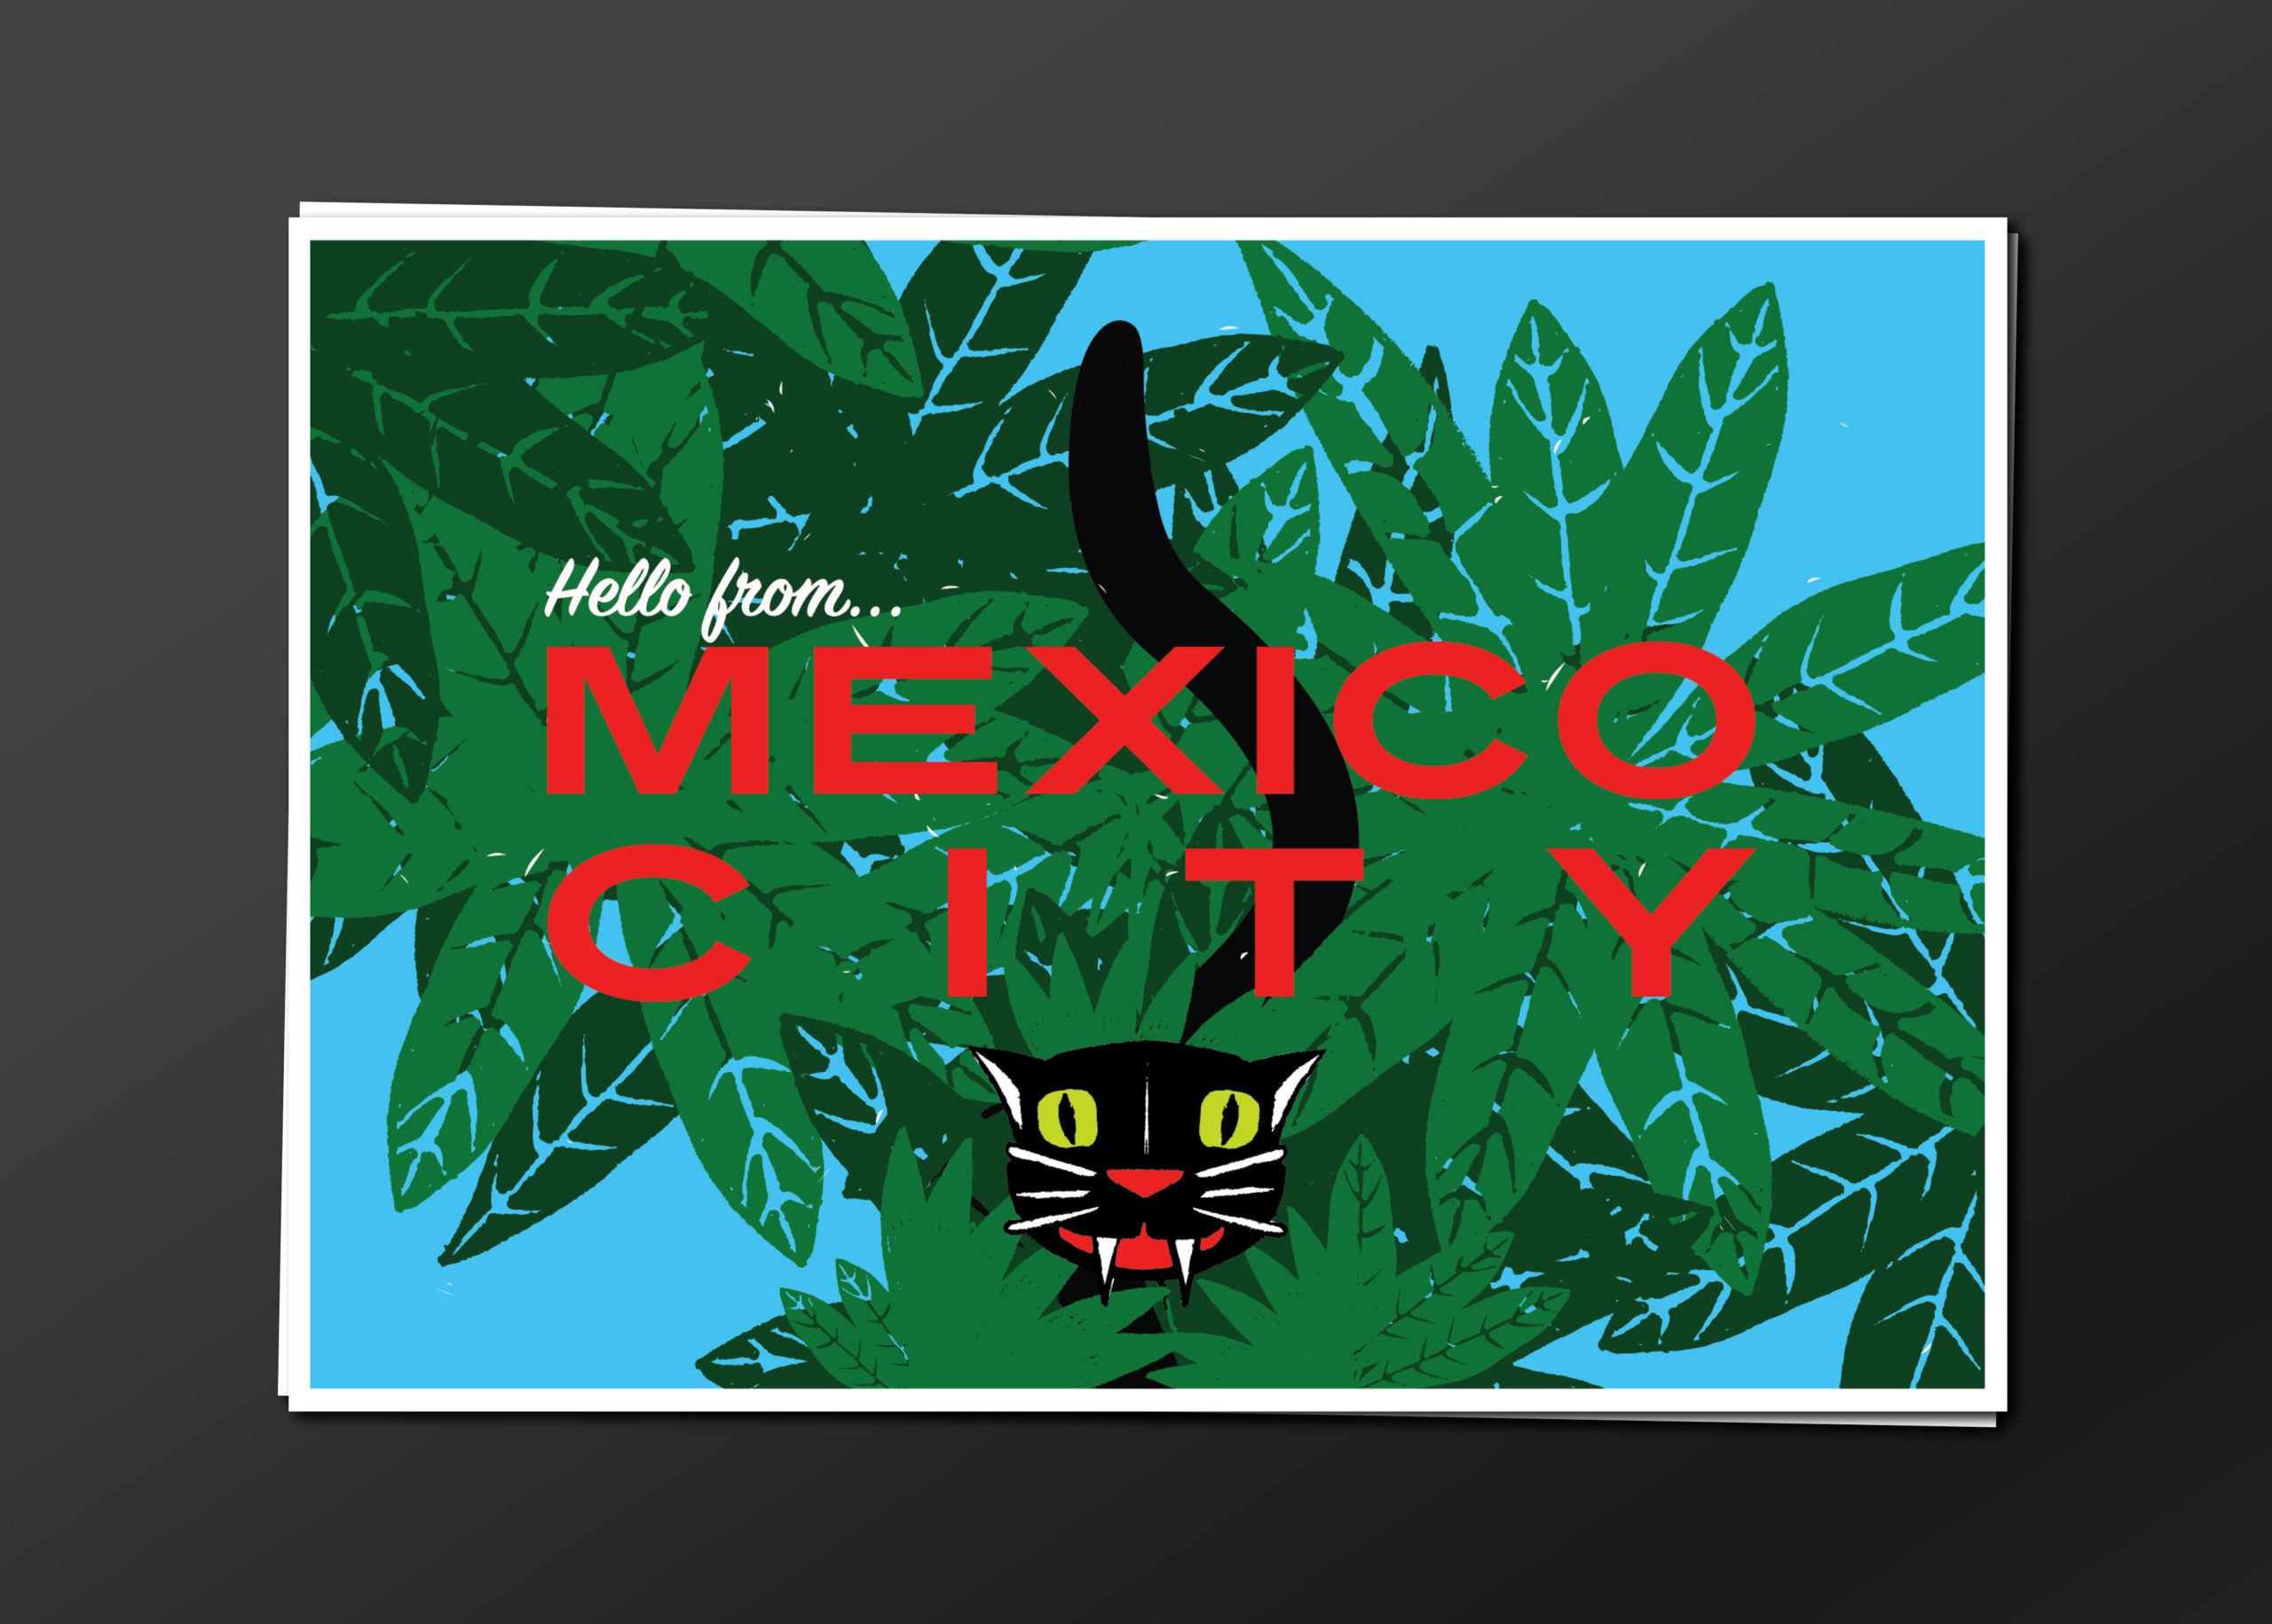 Postcard: Hello from… Mexico City